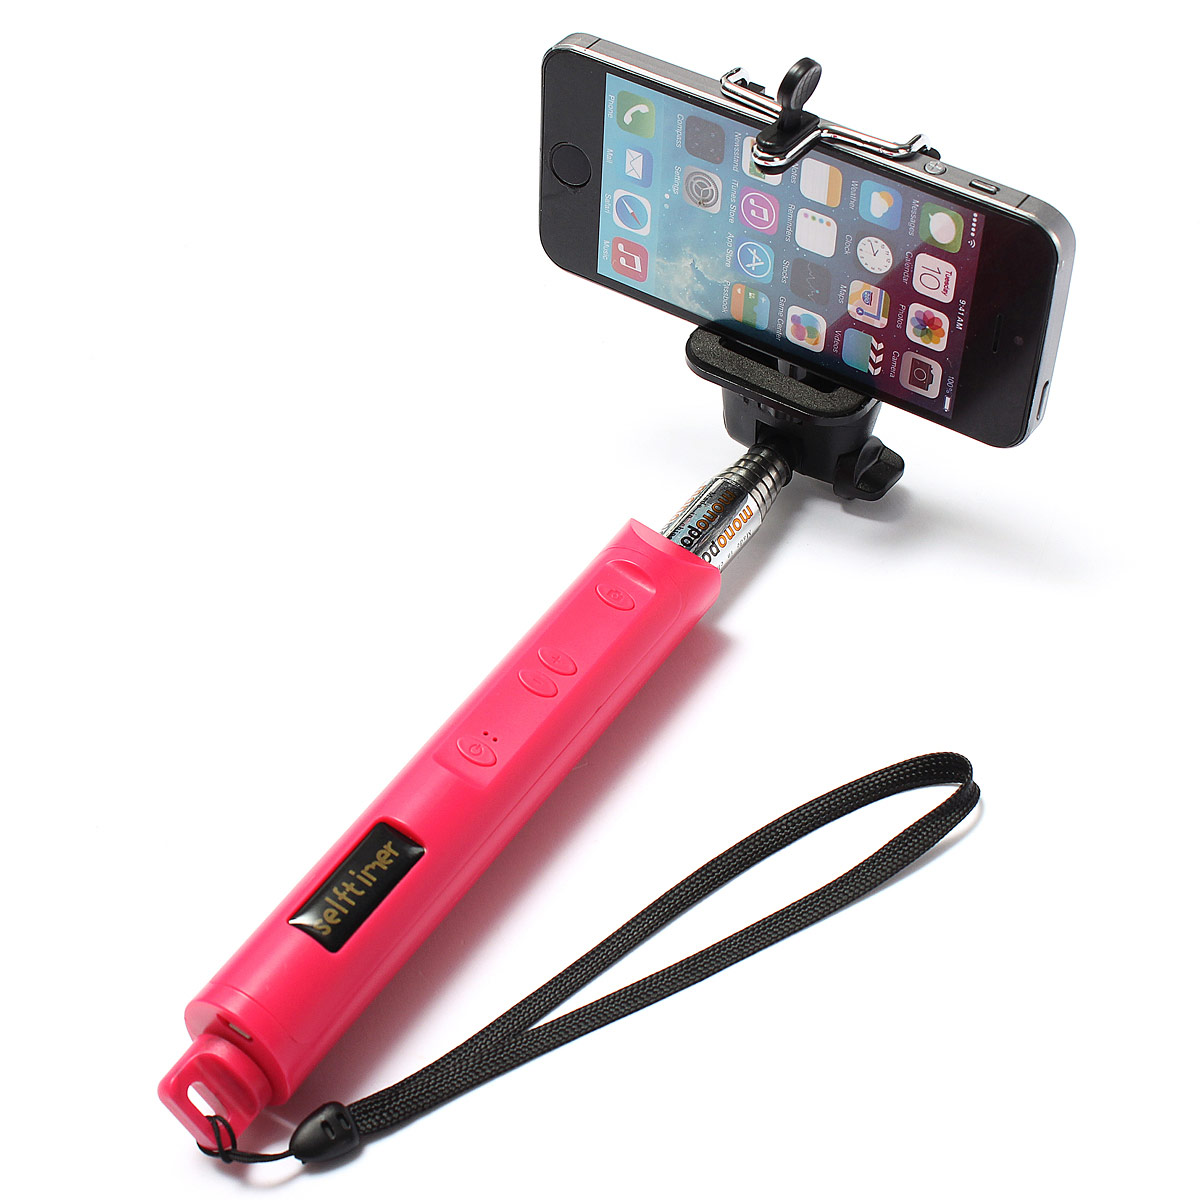 bluetooth extendable handheld selfie stick monopod w zoom for iphone 6 5 5s htc ebay. Black Bedroom Furniture Sets. Home Design Ideas